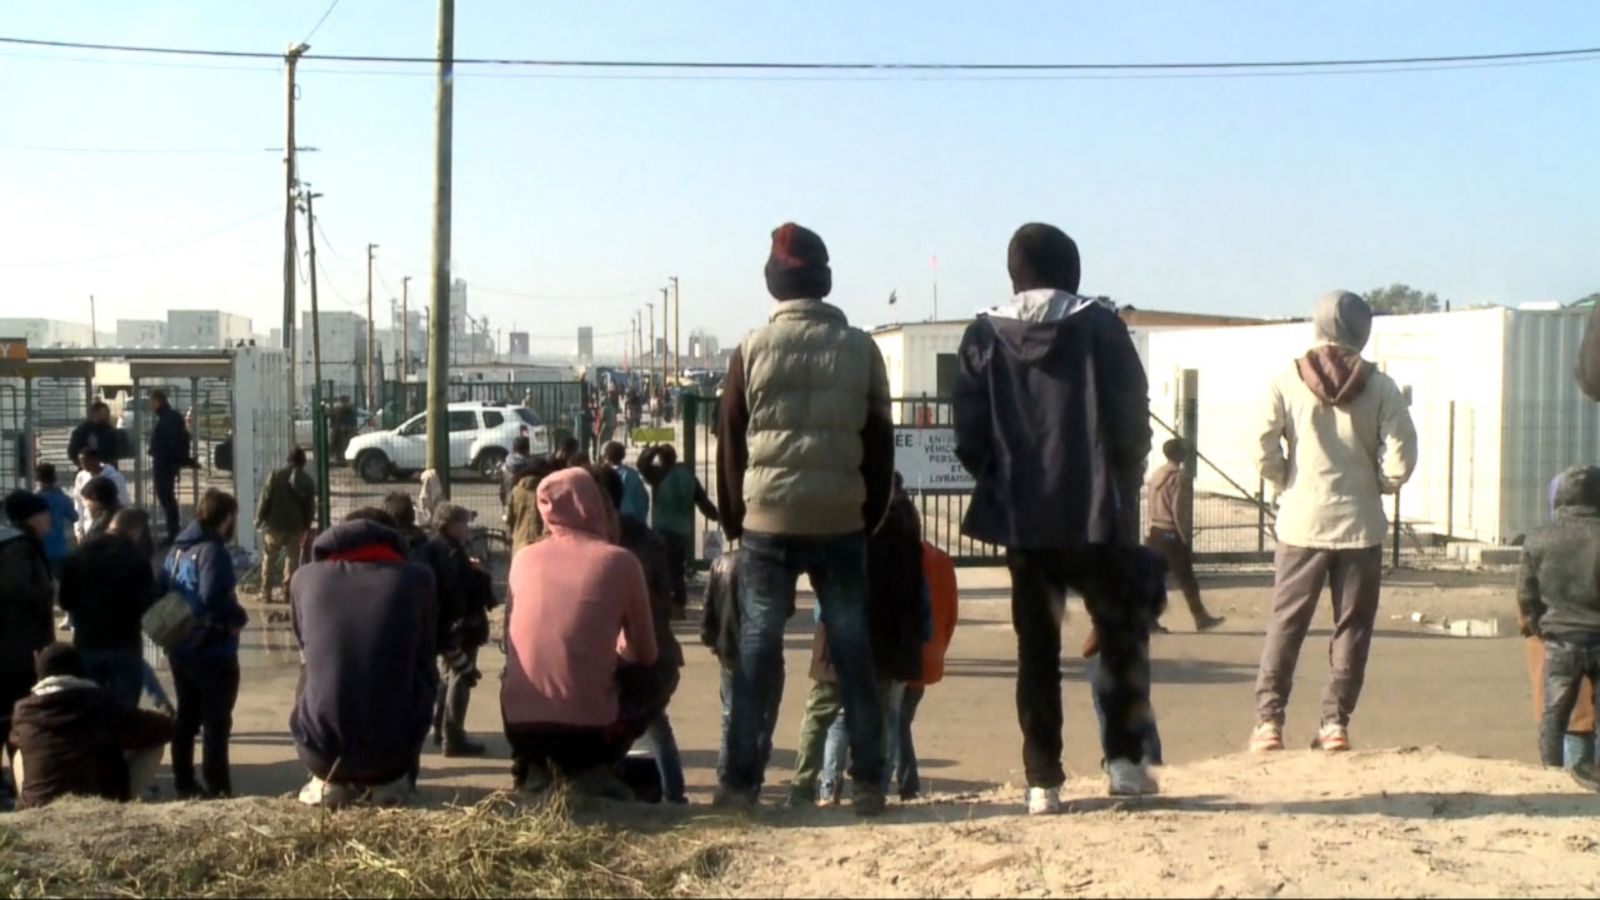 VIDEO: Lines of migrants with their lives in small bags waited calmly to get on buses in the French port city of Calais on Monday, the first day of the mass evacuation and destruction of the squalid camp they called home.